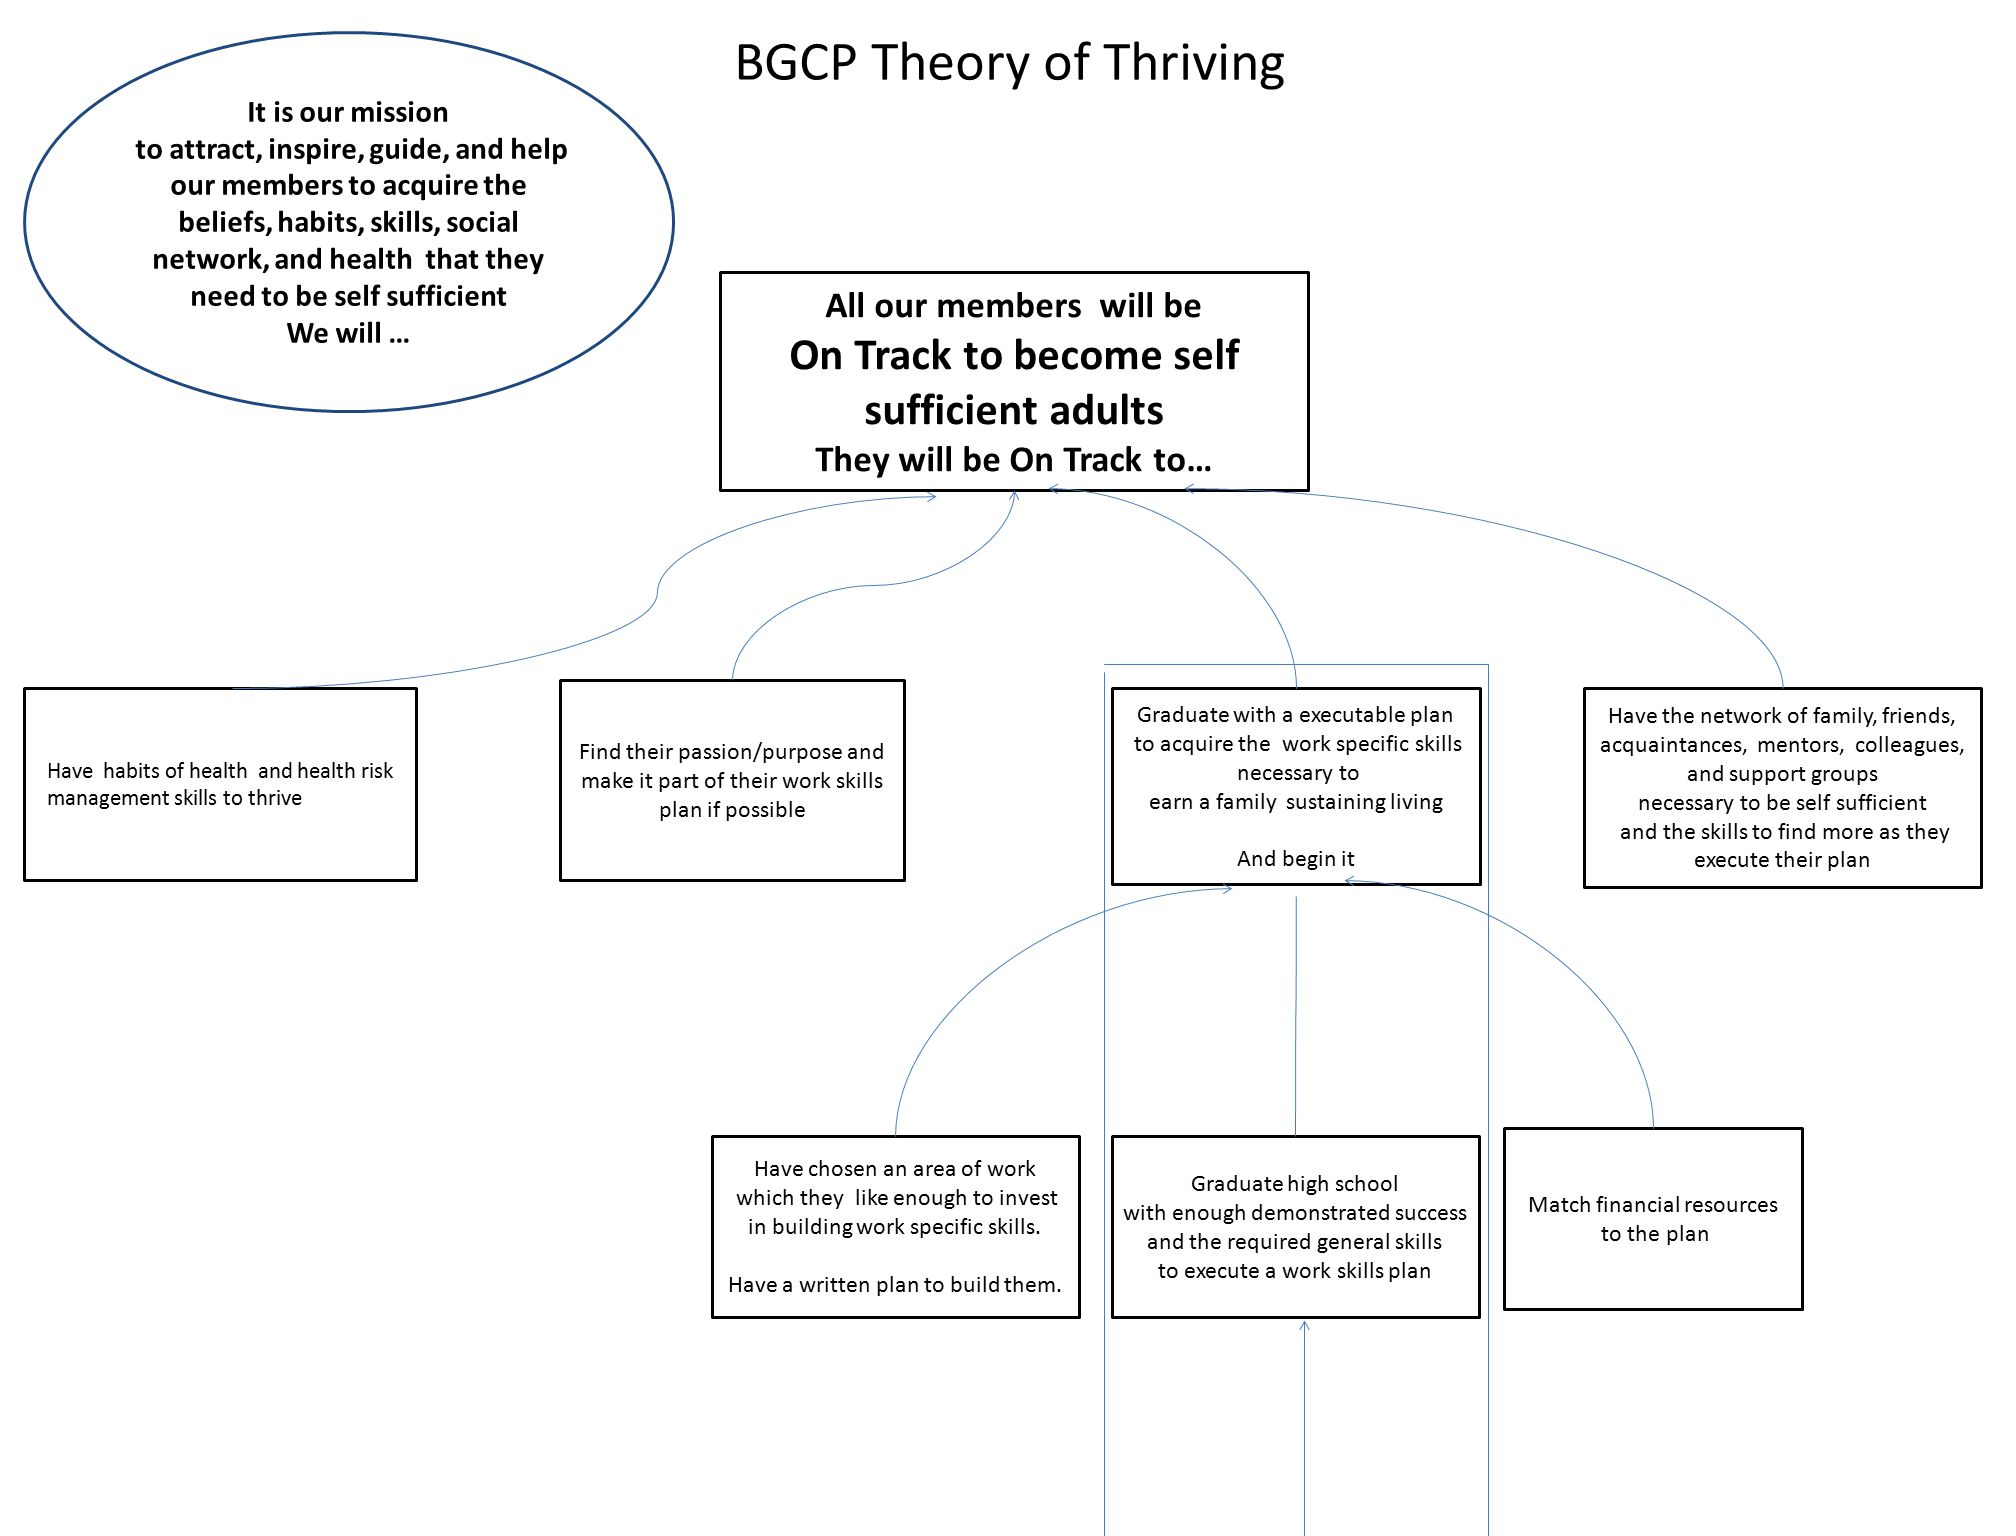 BGCP Theory of Thriving All our members will be On Track to become self sufficient adults They will be On Track to… It is our mission to attract, insp